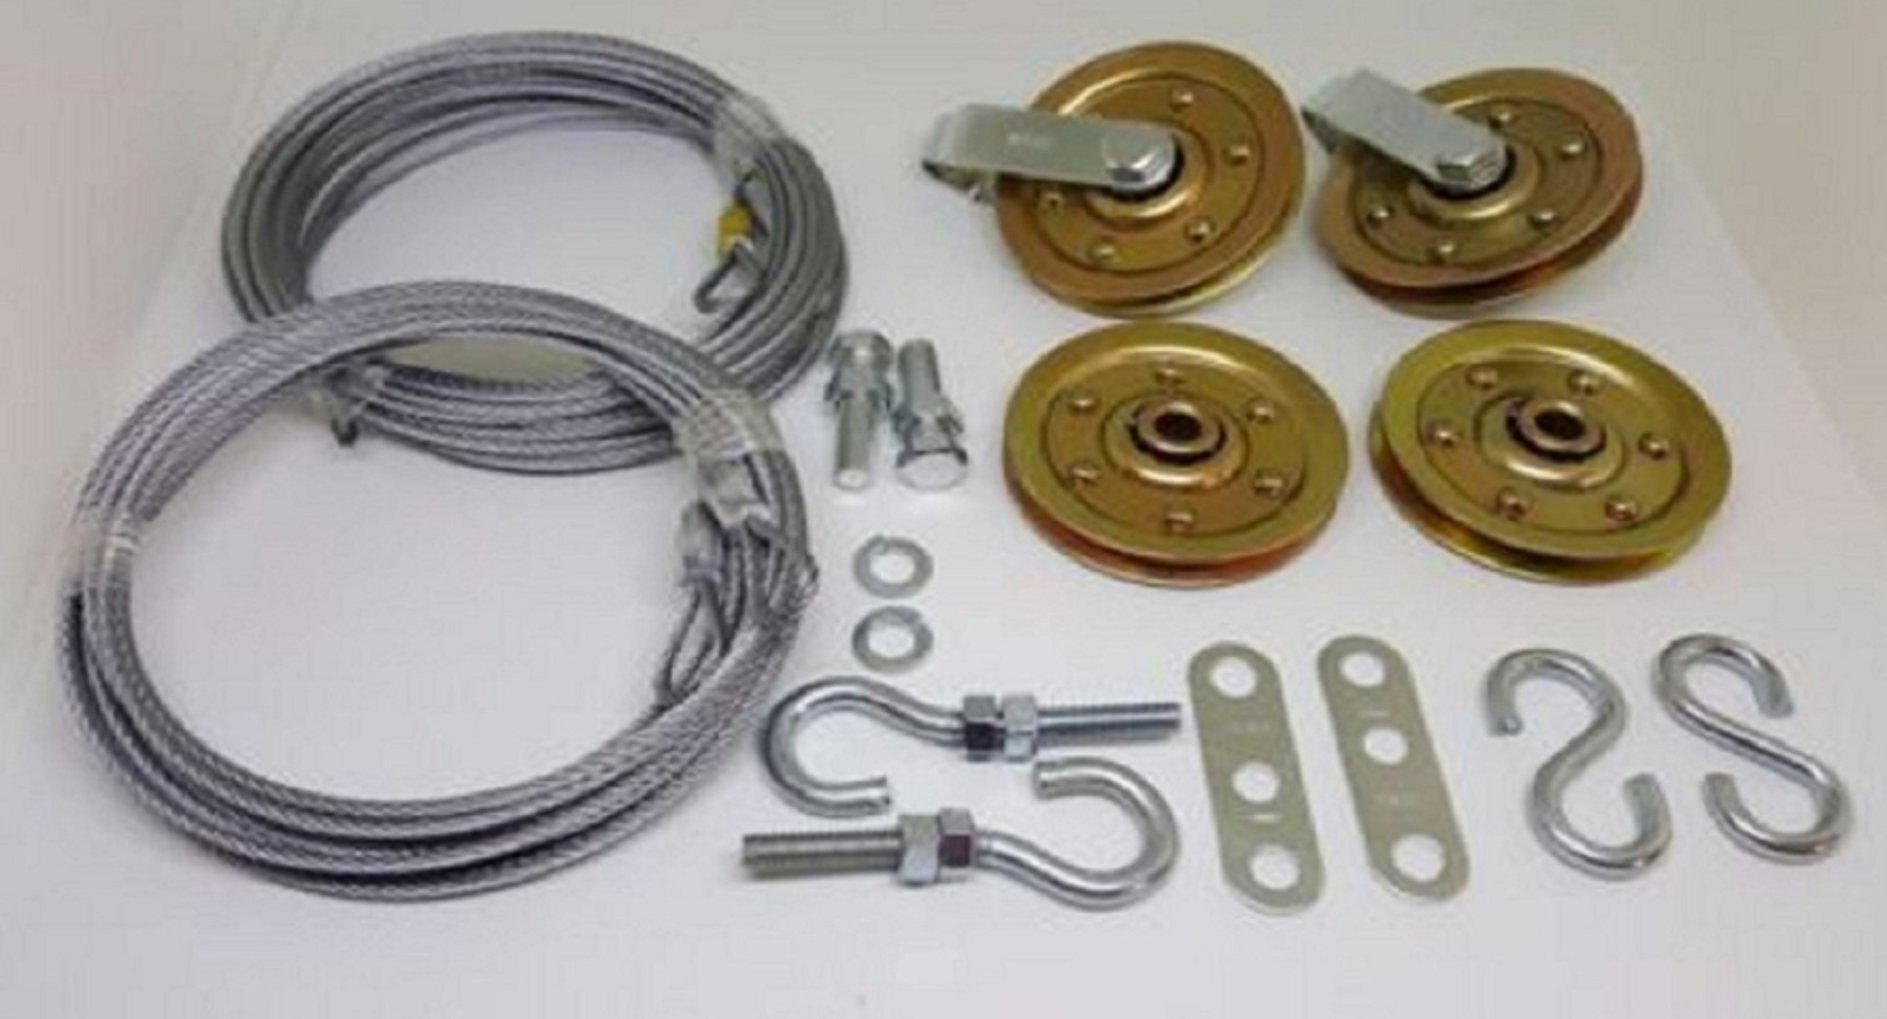 USA Premium Store Garage door extension spring Extra Heavy Duty pulley sheave kit & SAFETY CABLE by USA Premium Store